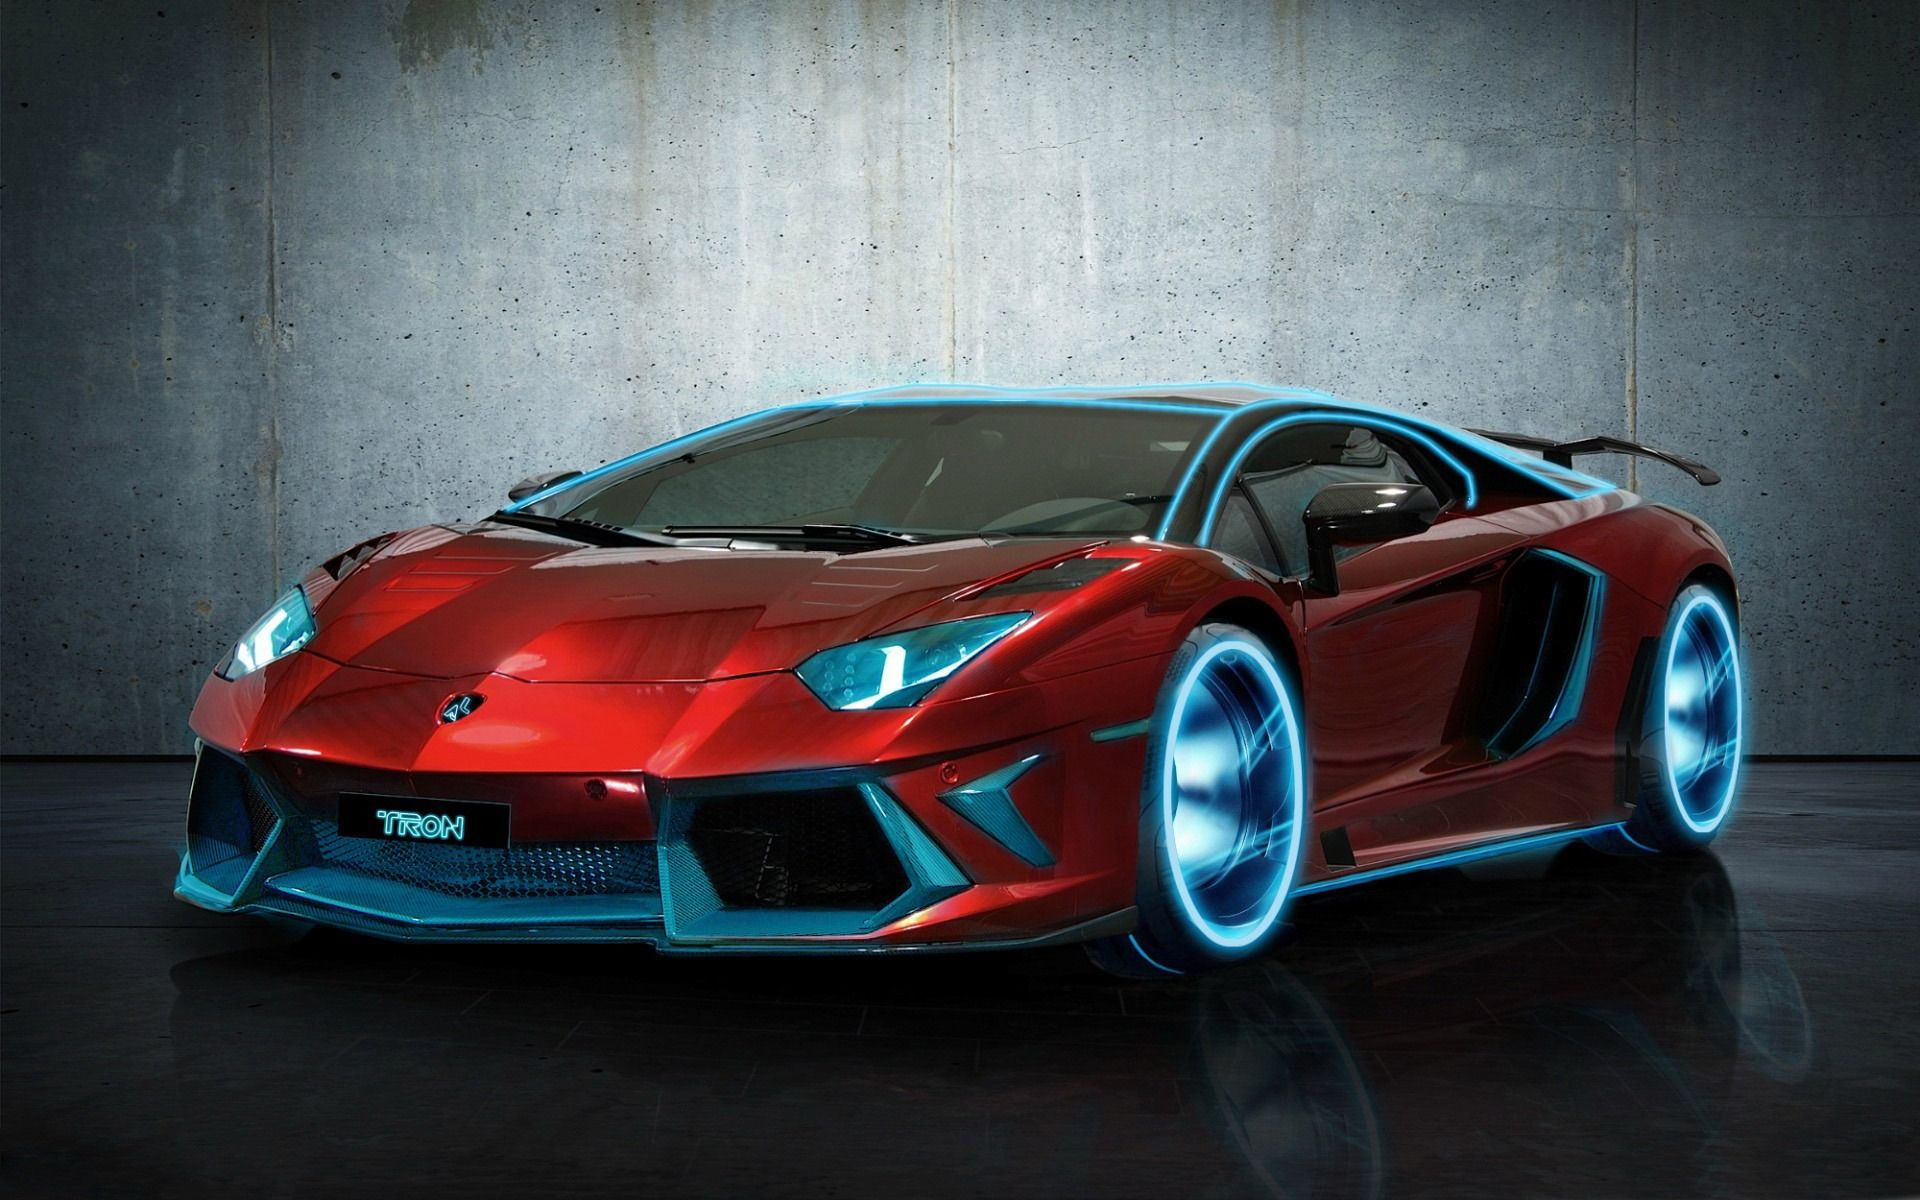 Pin By Nintendo Freak On Cool Cars Cool Car Pictures Lamborghini Aventador Wallpaper Lamborghini Cars